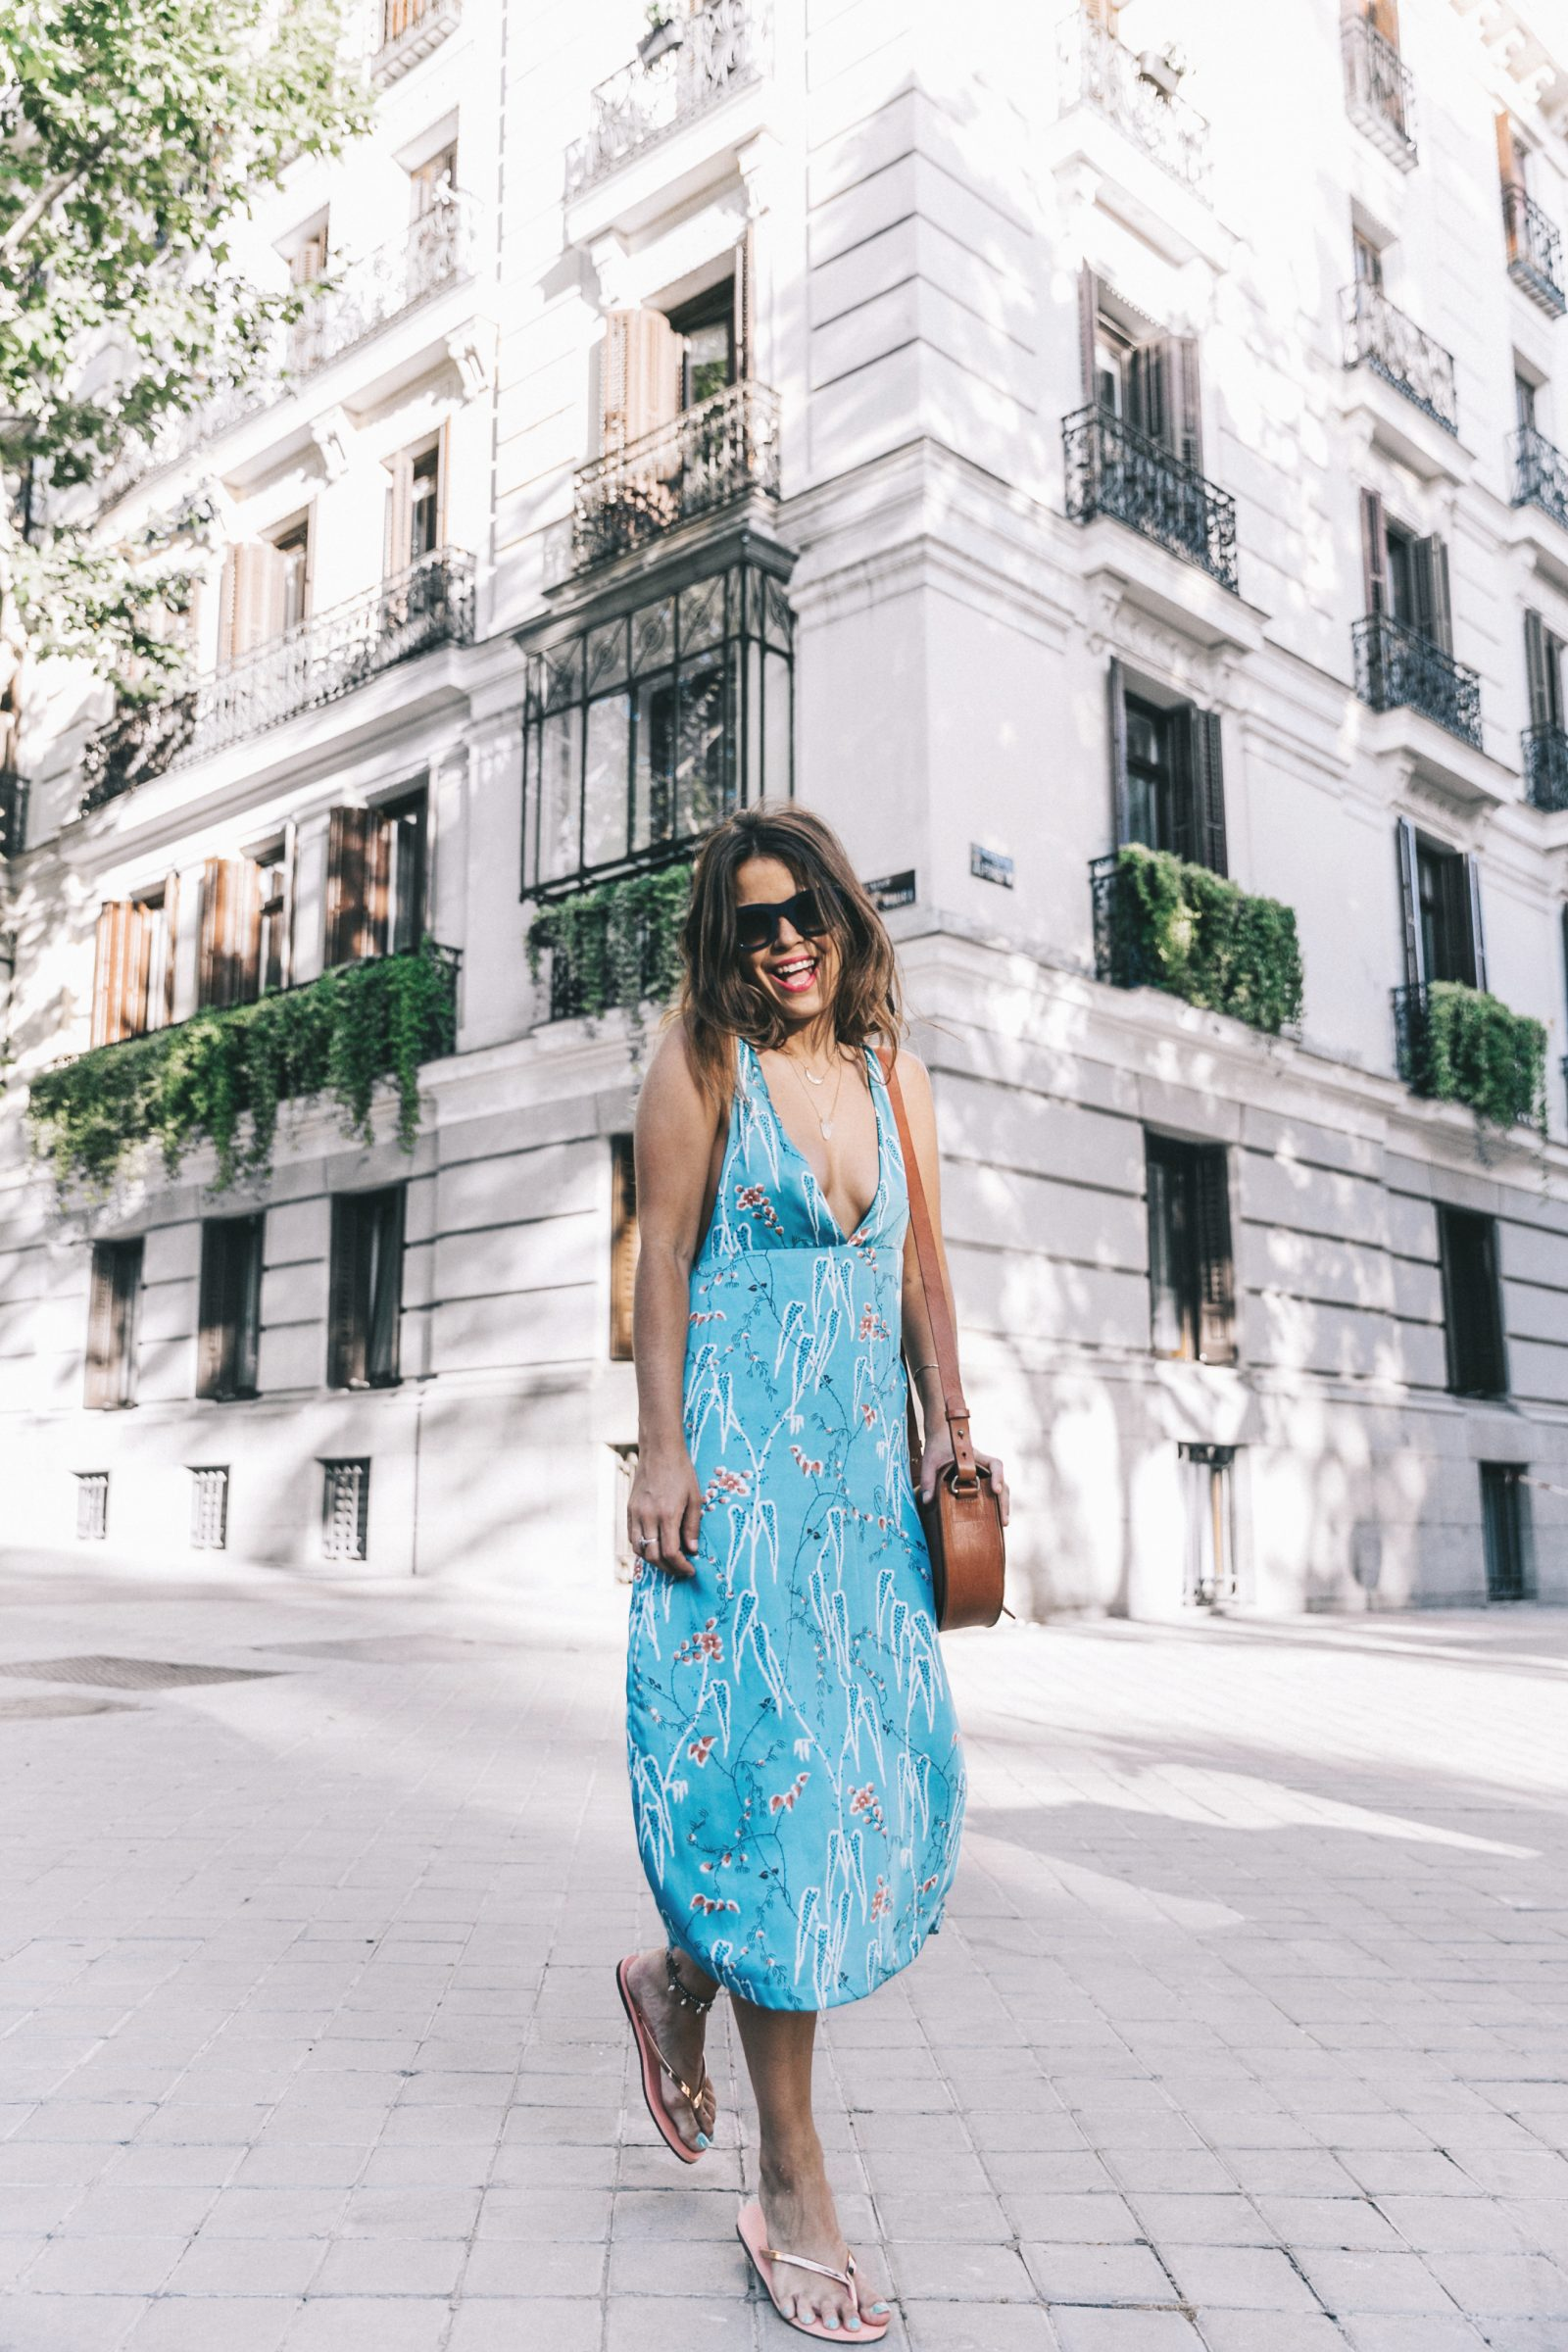 Outfit-Floral_Dress-Havaianas_Sandals-Summer-Sezane_Bag-Street_Style-Celine_Sunglasses-Collage_Vintage-17